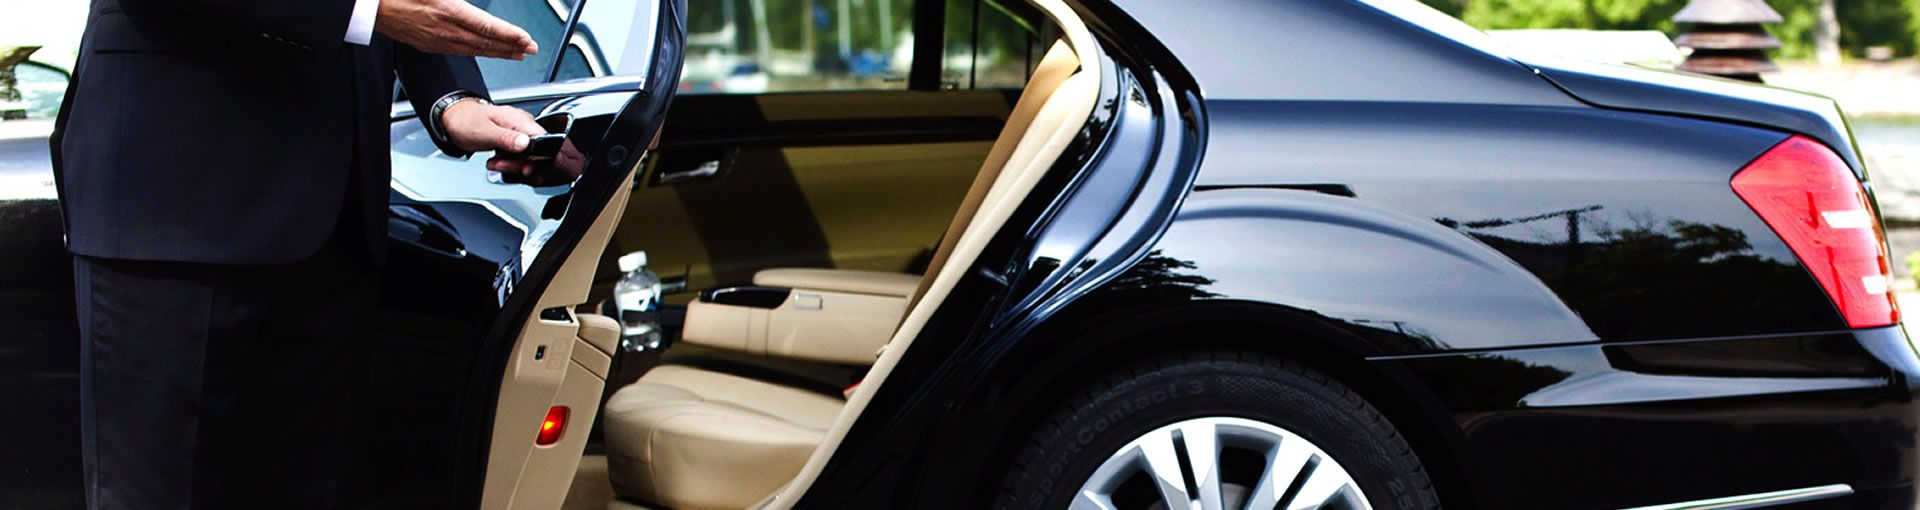 Luxury Transportation Exquisite San Diego's Limos